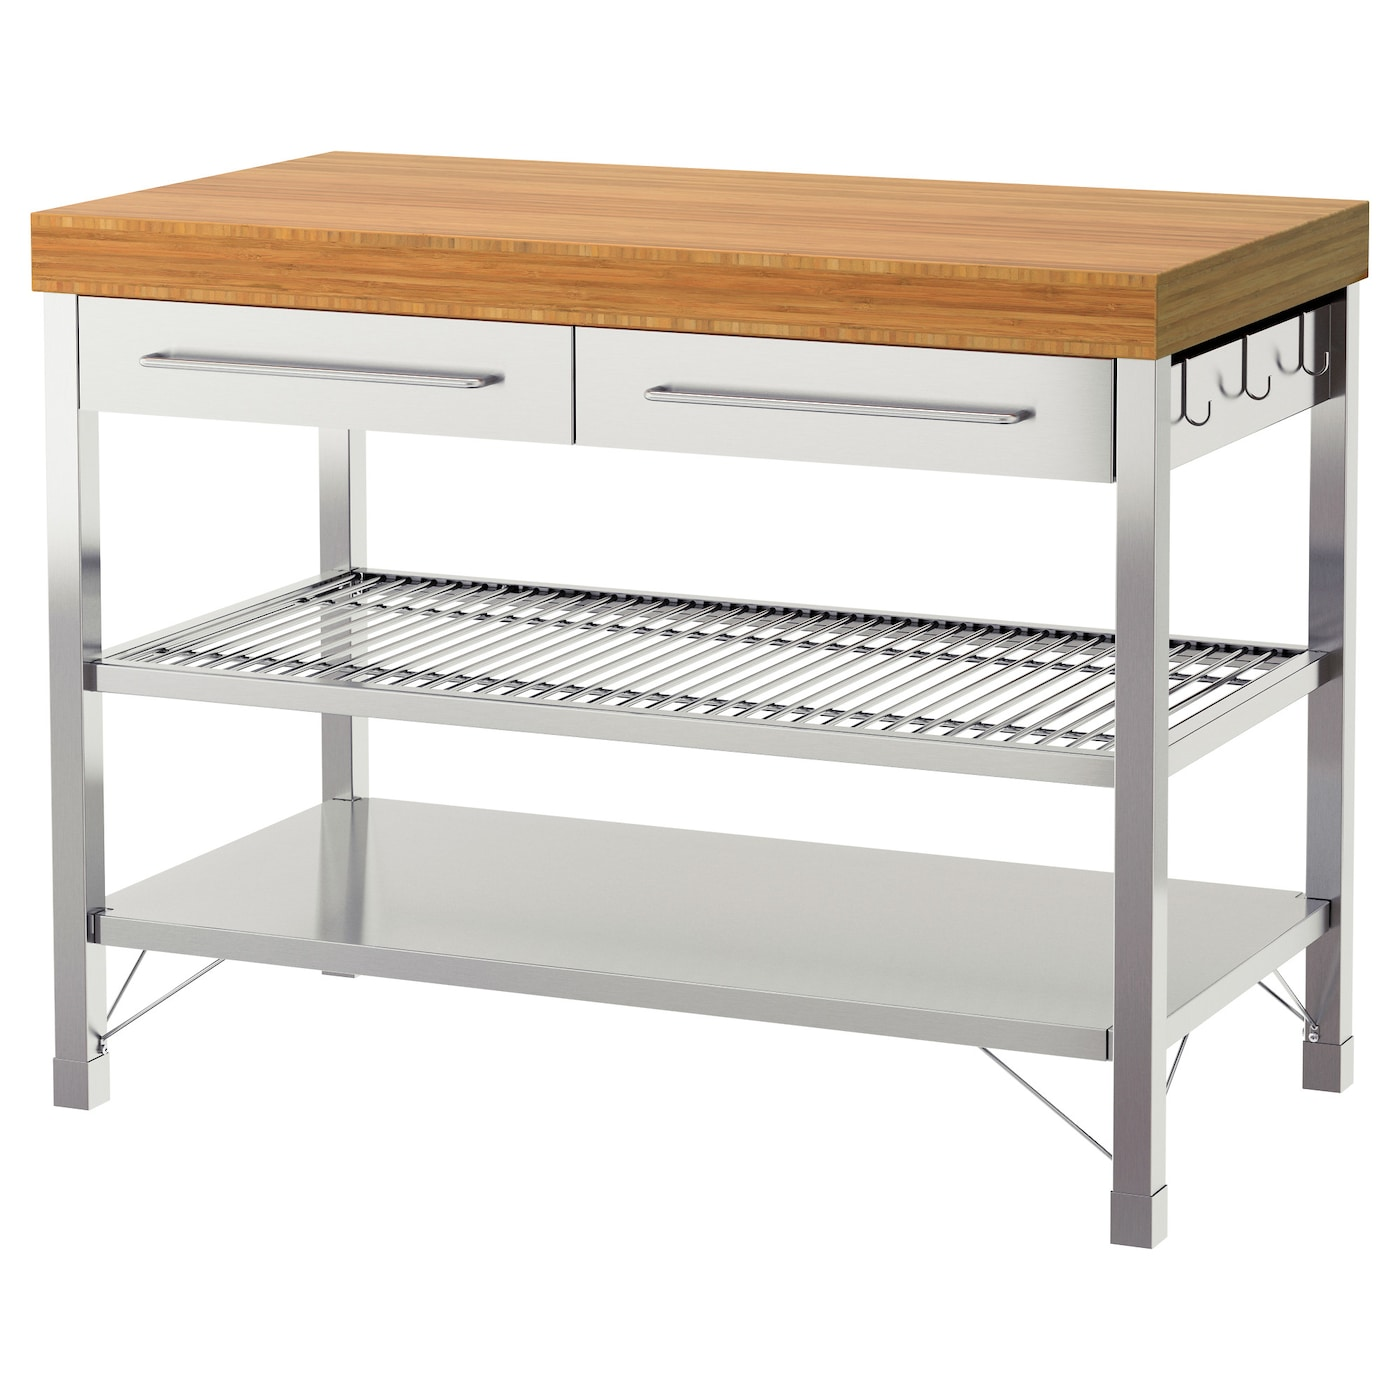 rimforsa work bench stainless steel bamboo cm ikea. Black Bedroom Furniture Sets. Home Design Ideas